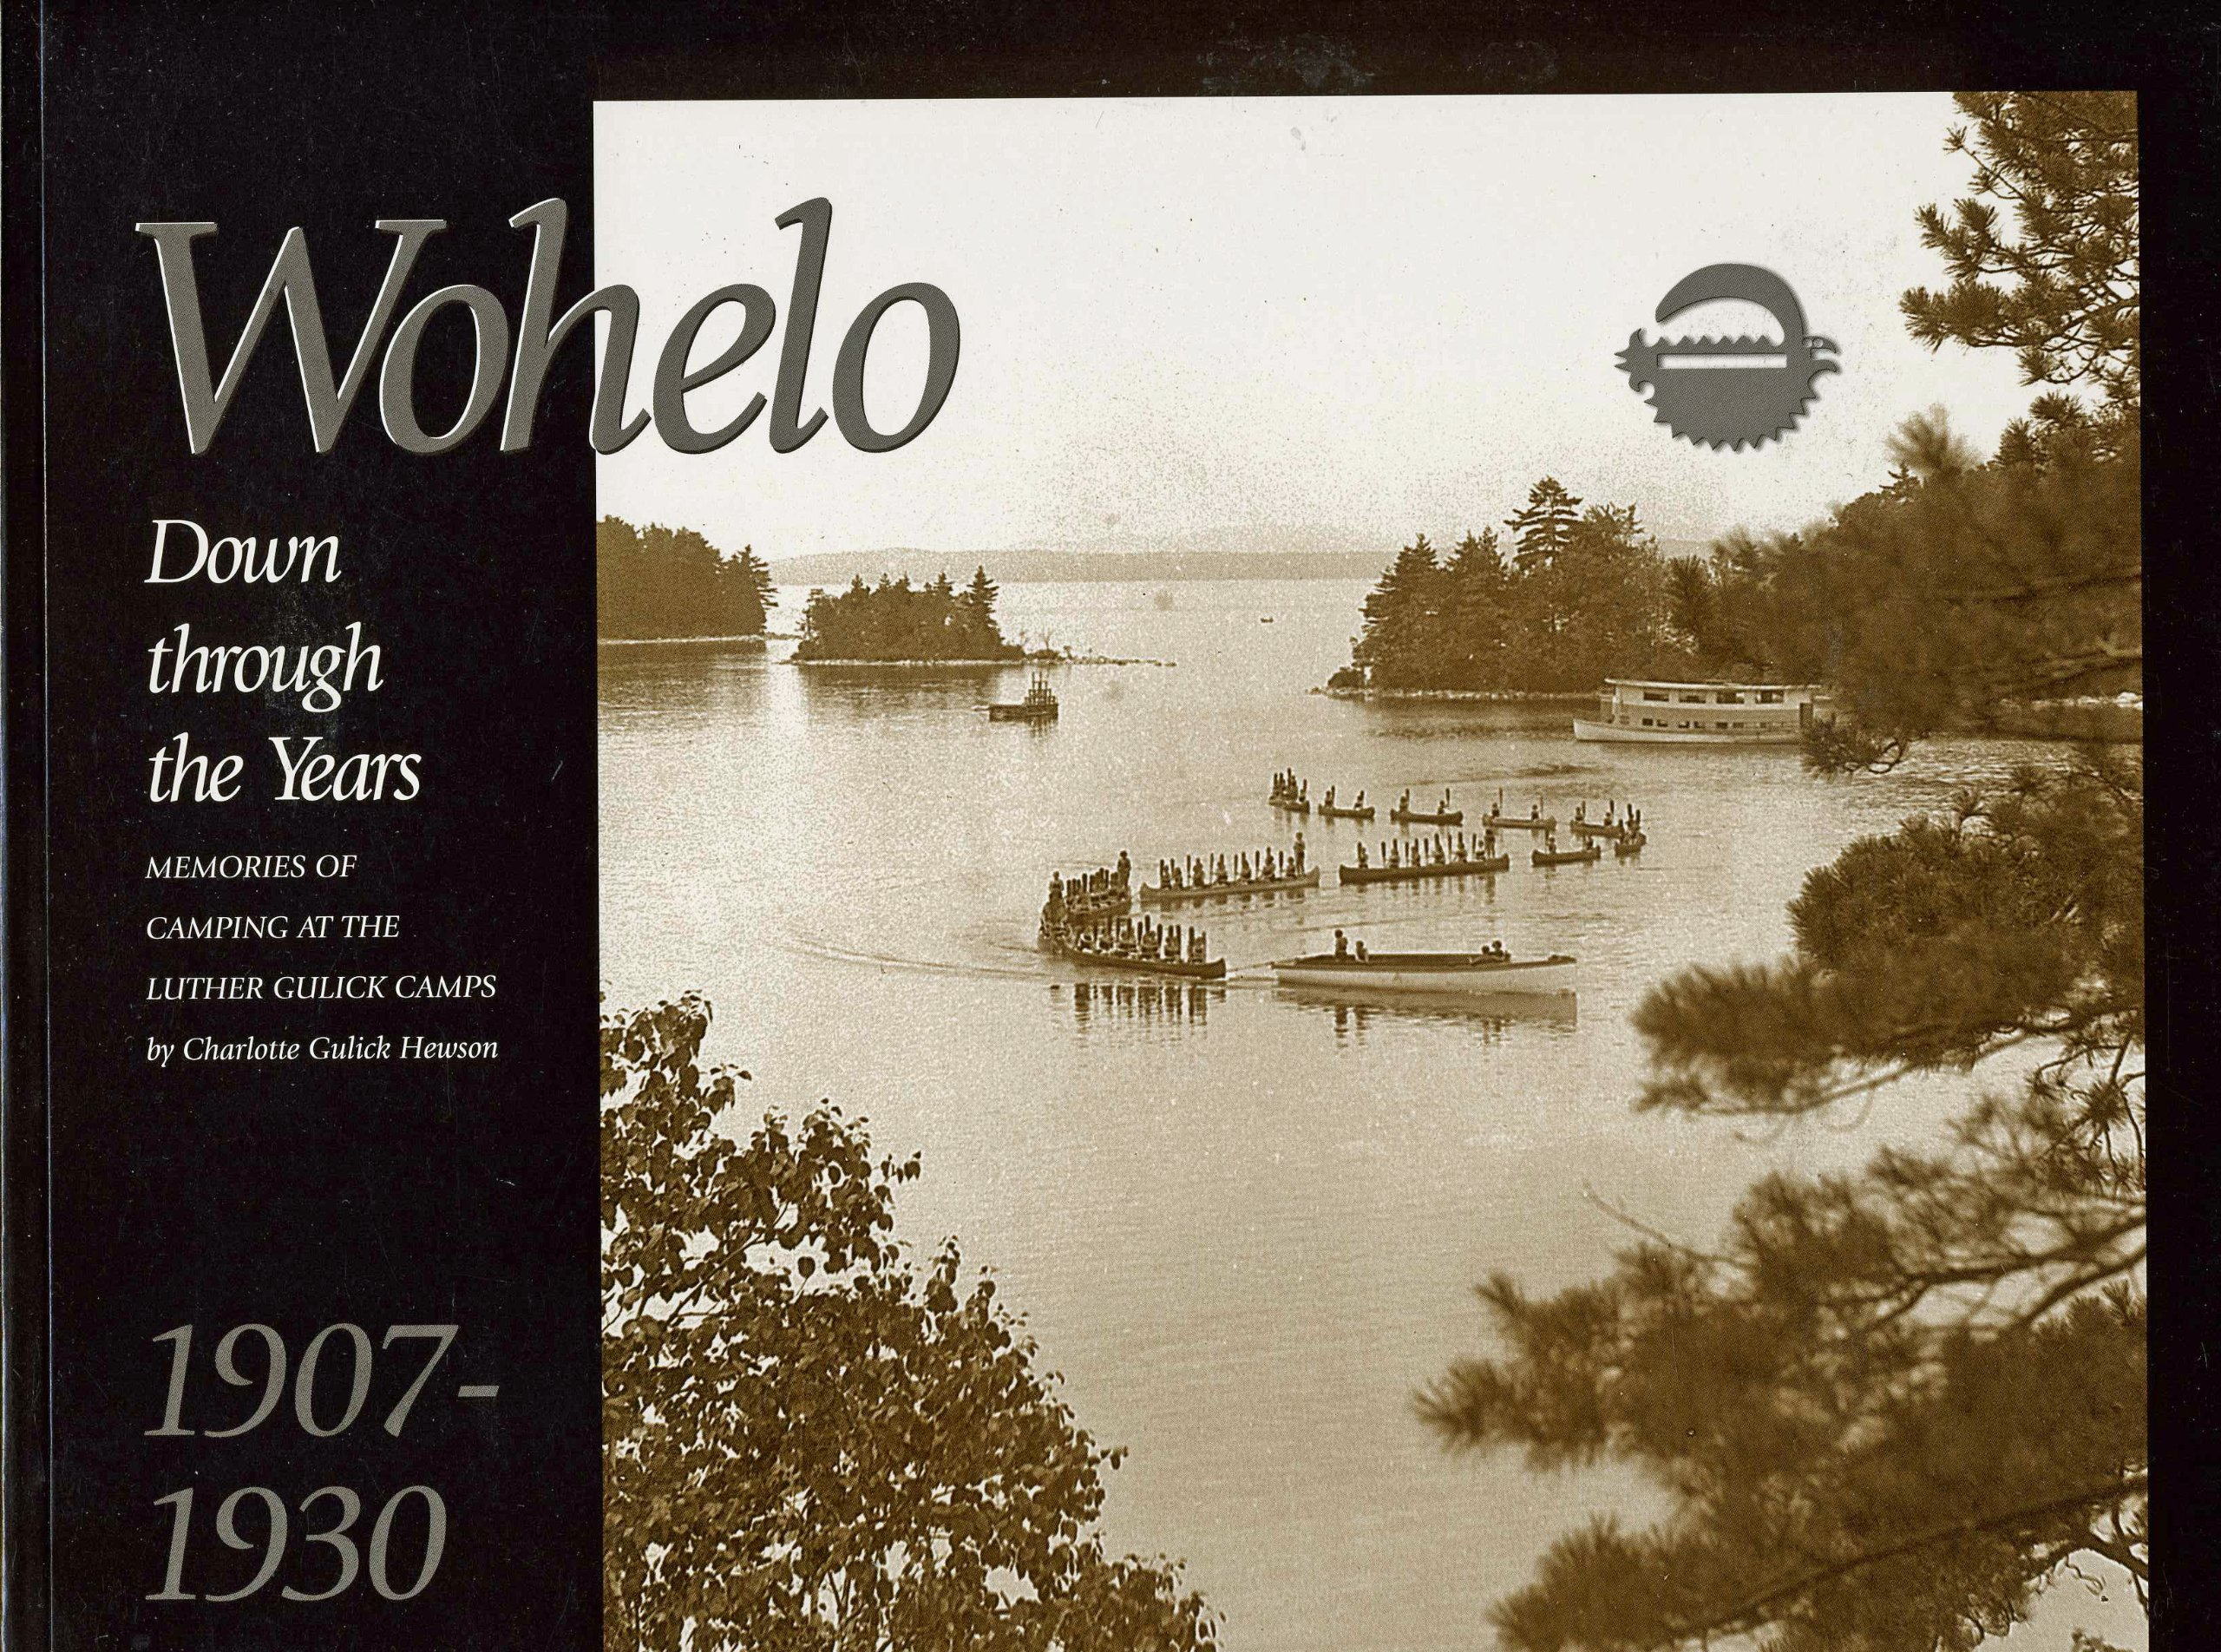 Wohelo: Down through the Years. Memories of Camping at the Luther Gulick Camps 1907-1930. ebook